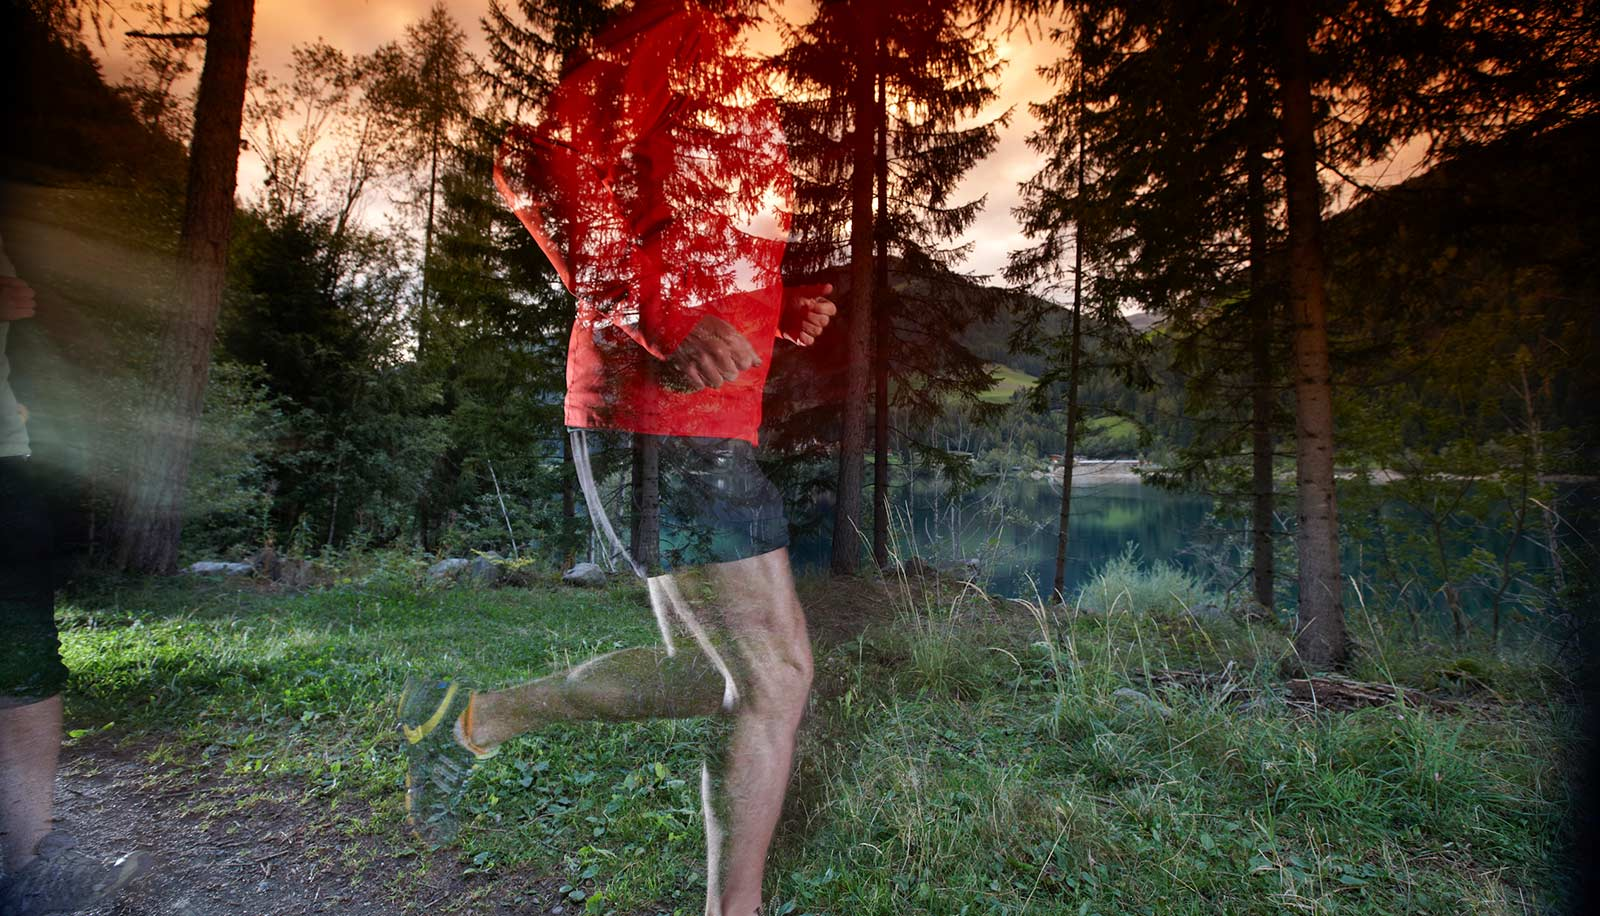 Two images: person jogging in front of woods and a lake in the backgroung